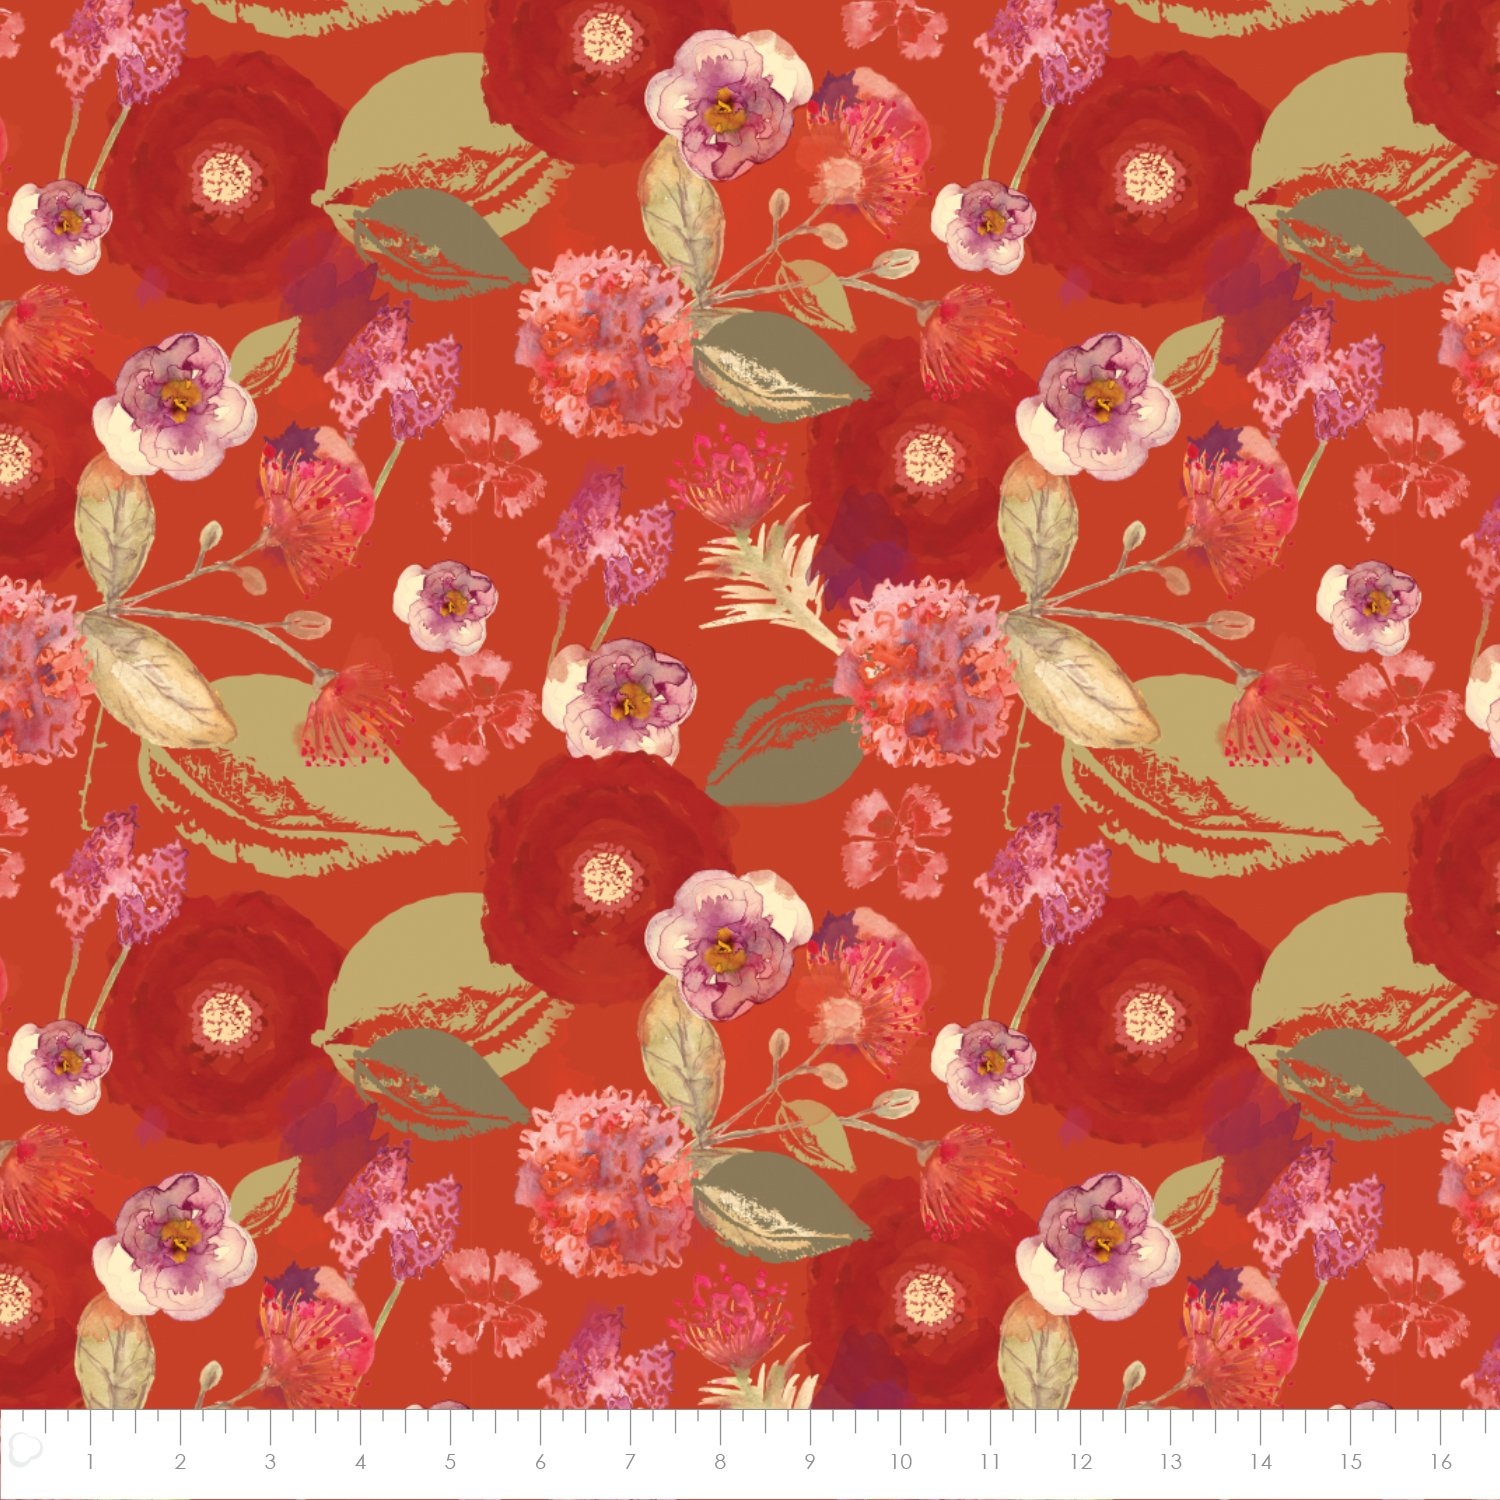 MULBERRY BLOOM - MIXED FLORAL